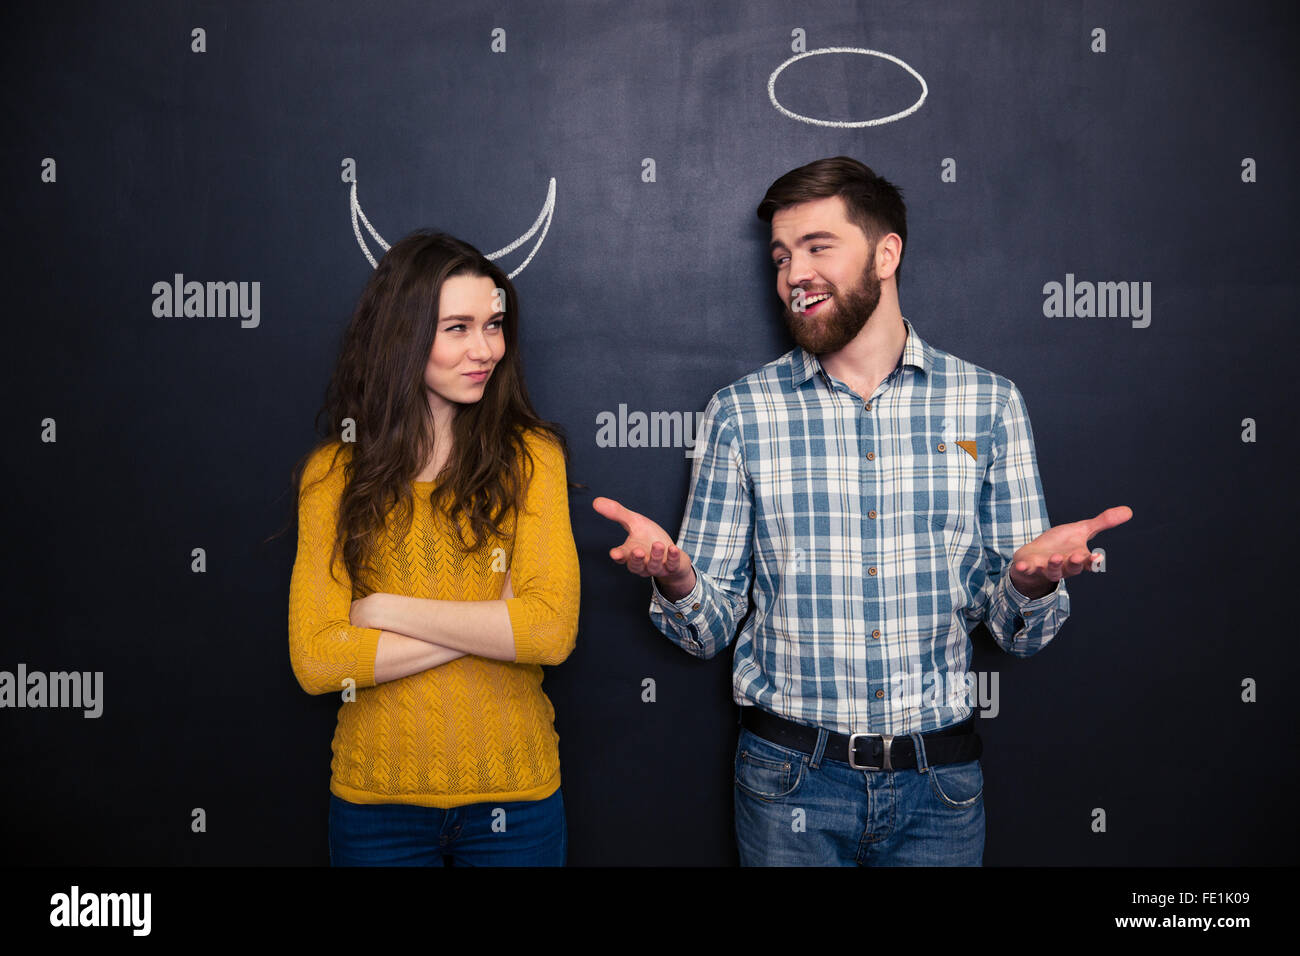 Smiling young man and woman imitating devil and angel standing over chalkboard background Stock Photo